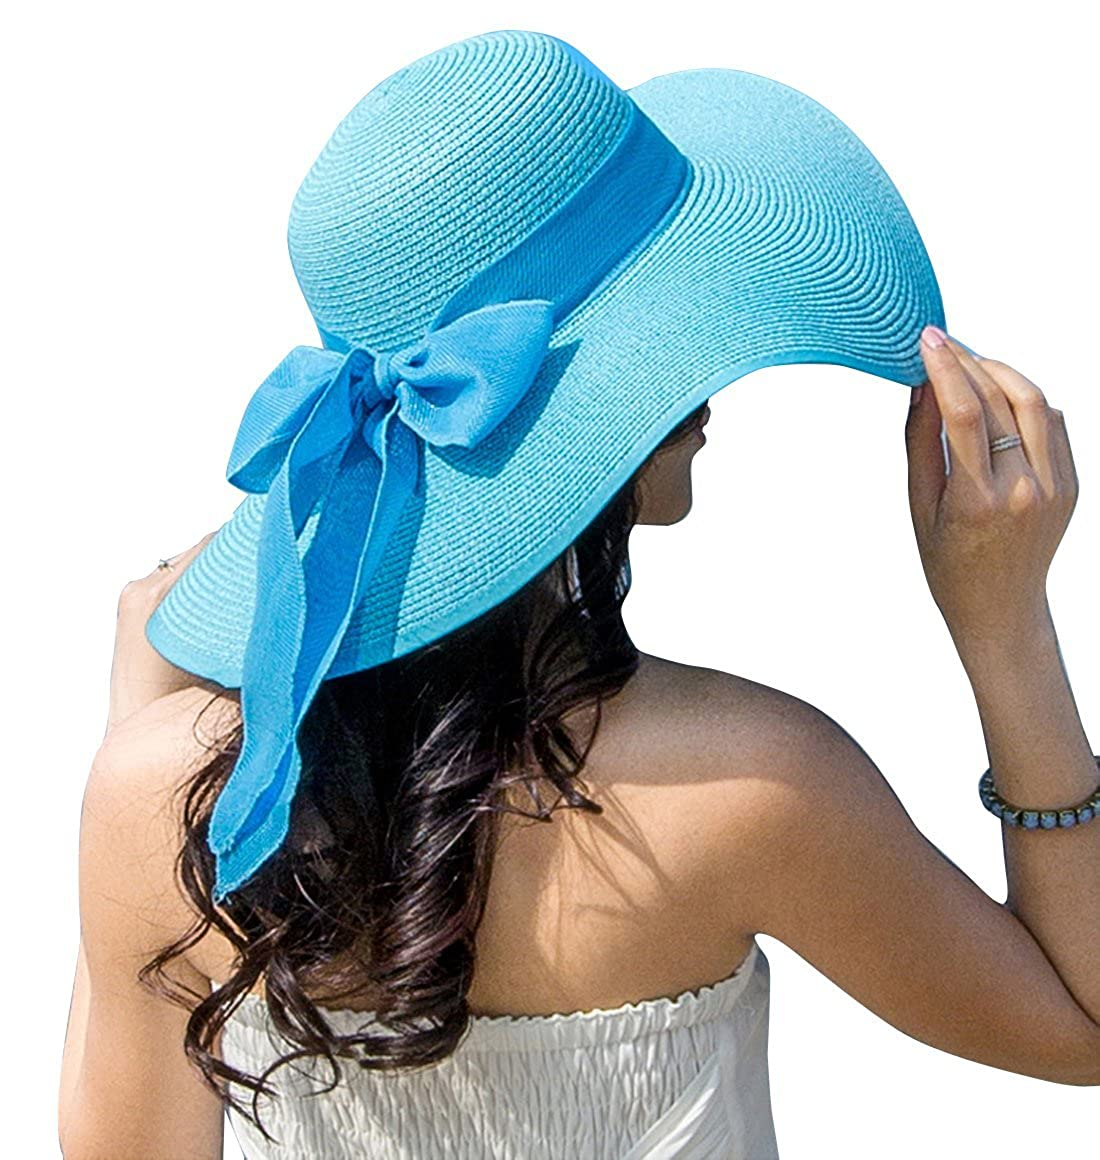 828dcbc179776 Wide Large Brim --- Those sunmmer sun hats can shield your eyes and face  from the sun